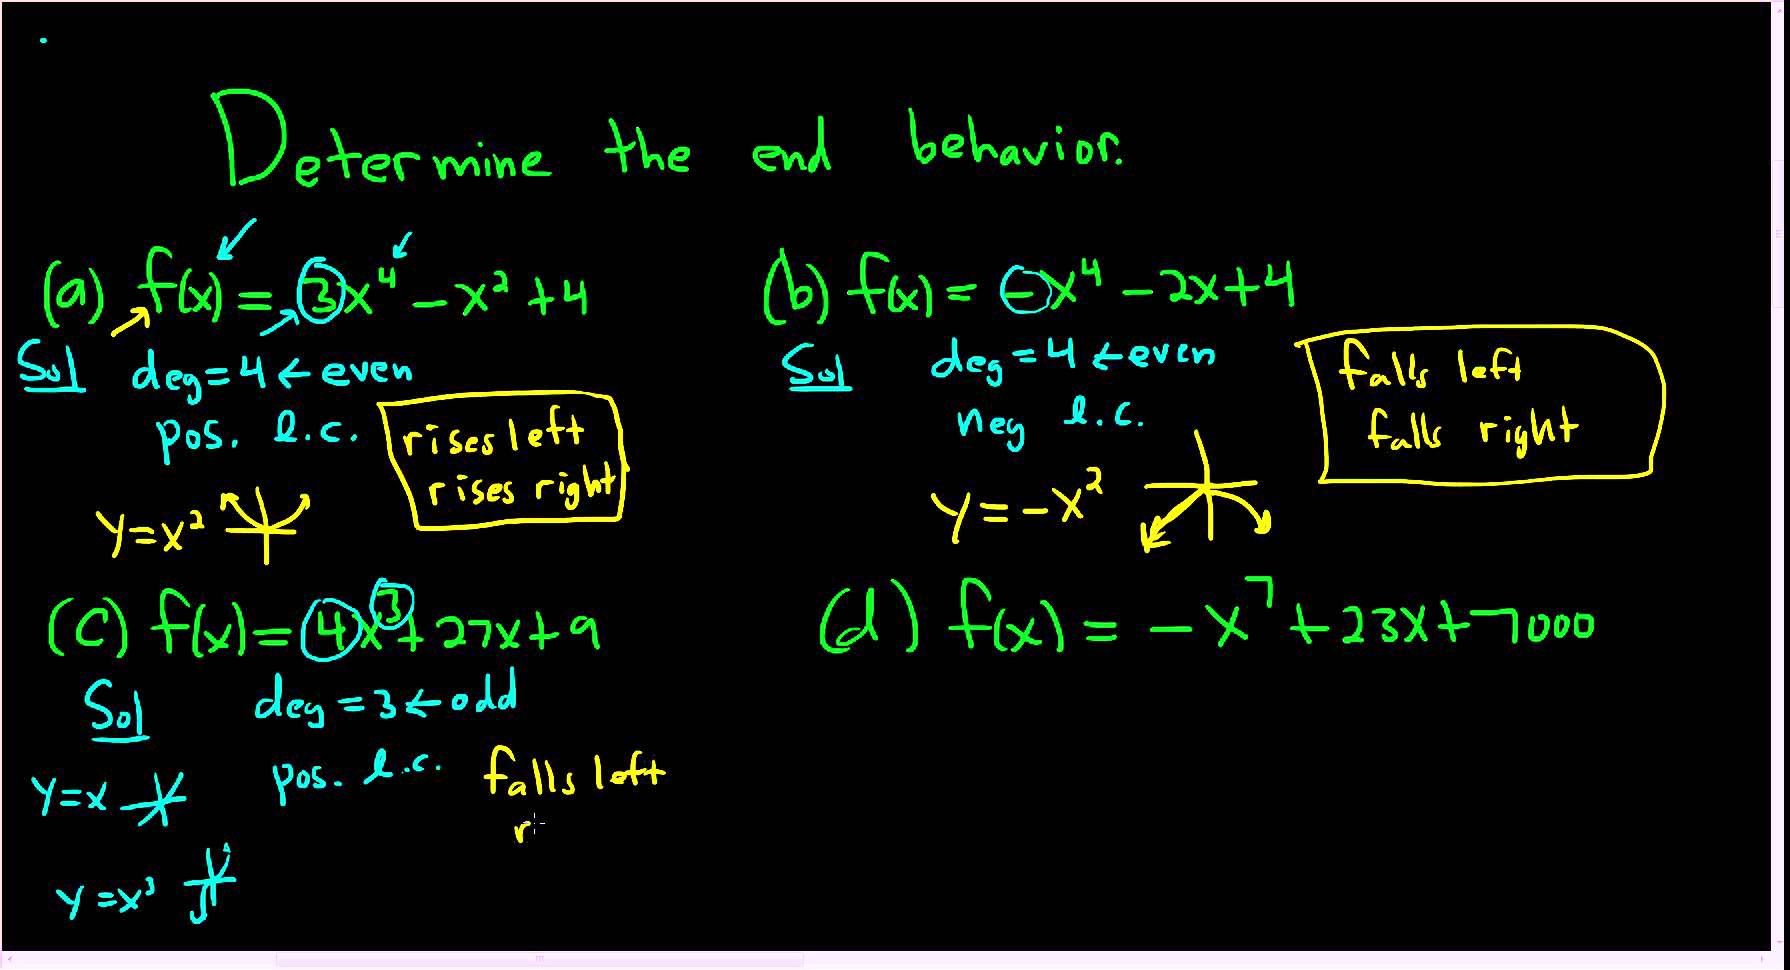 How To Determine The End Behavior Of A Polynomial Function